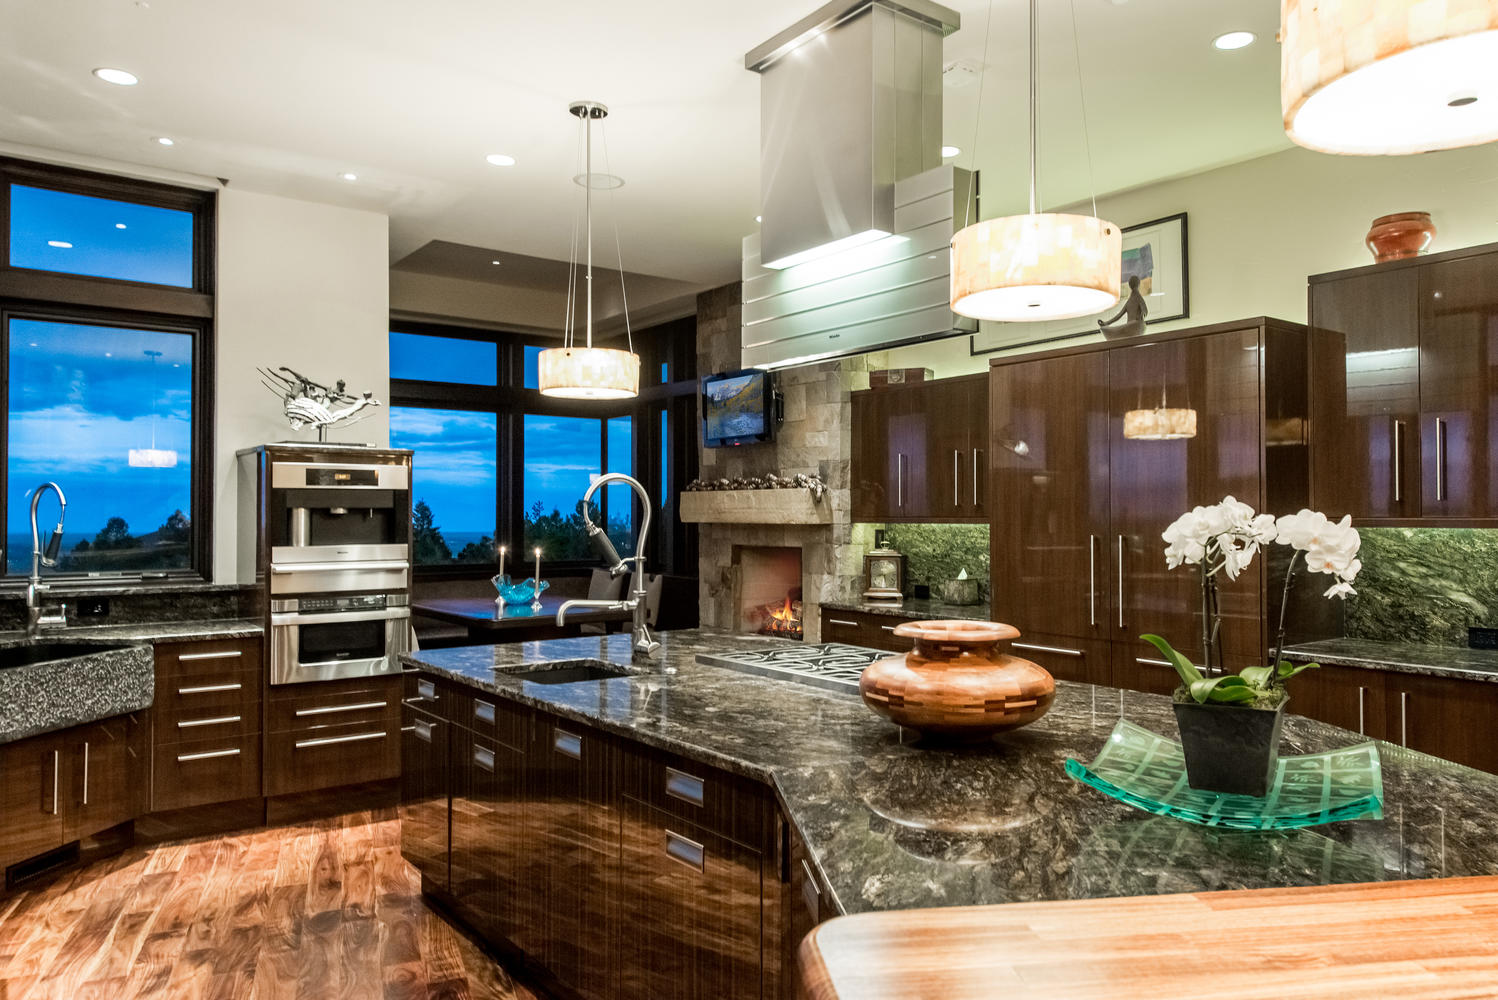 4855 Willow Stone Heights-large-017-15-Kitchen-1498x1000-72dpi.jpg